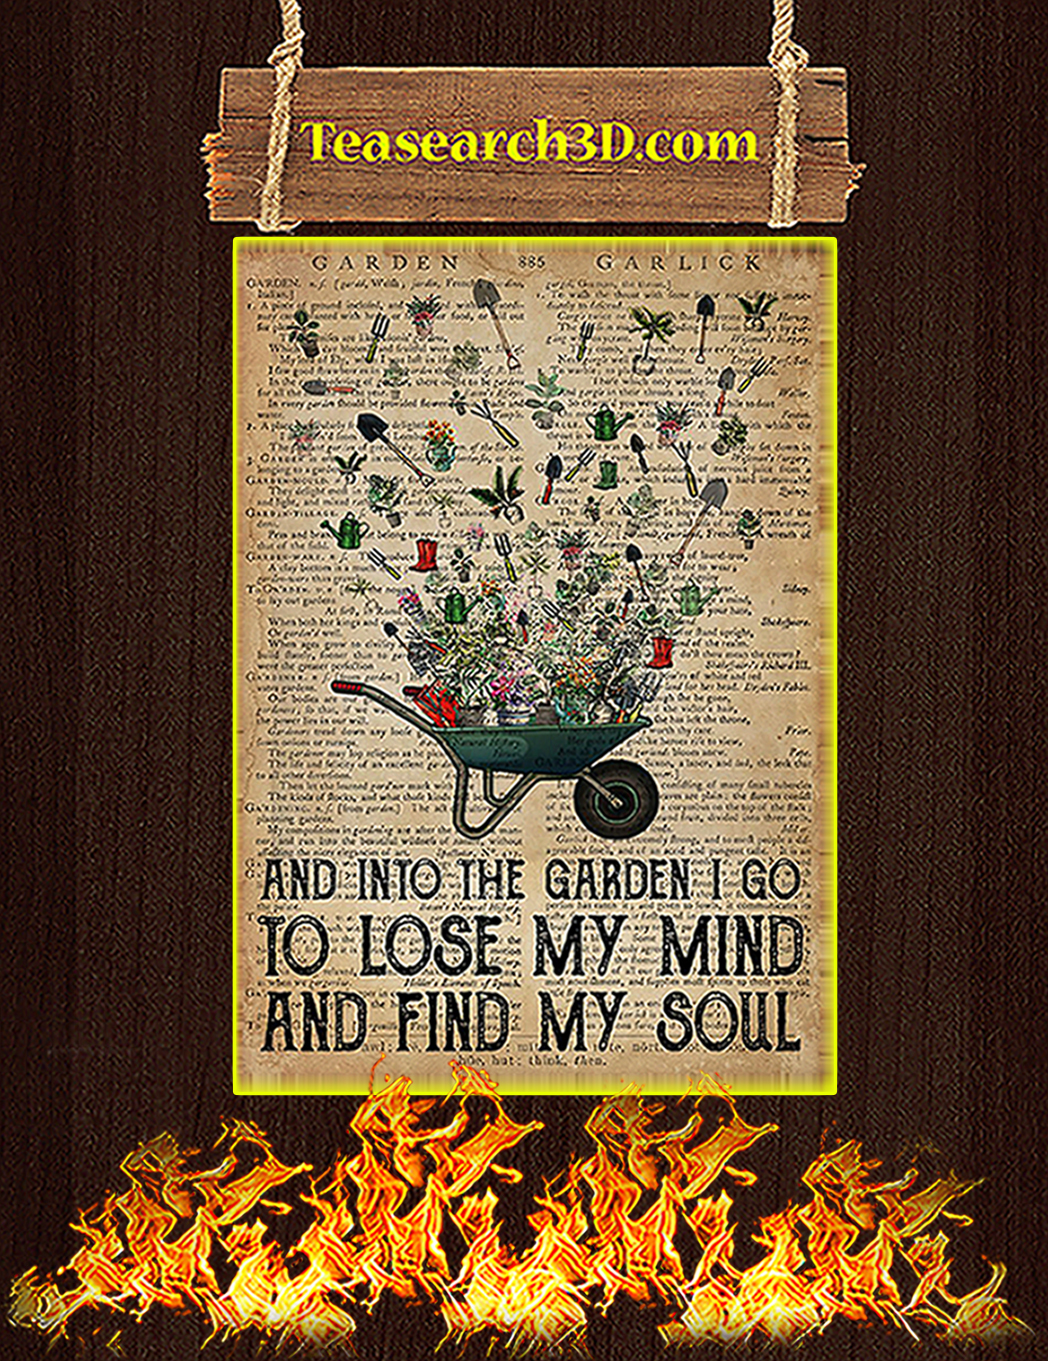 And into the garden I go to lose poster A1